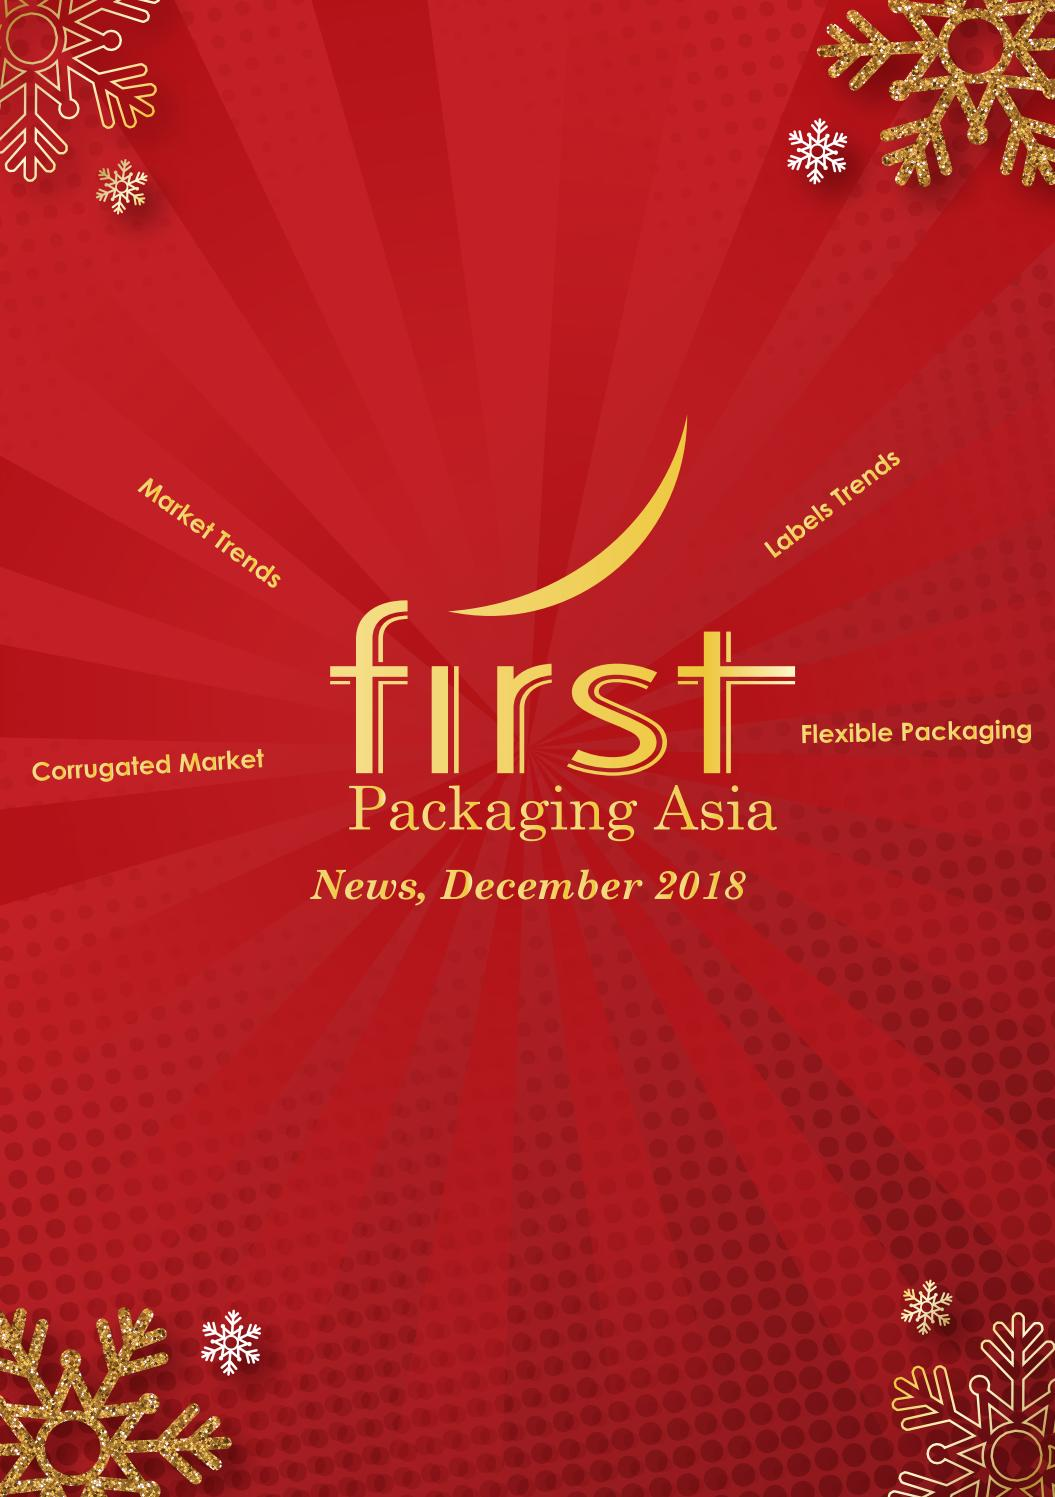 First Packaging Asia News December 2018 by Rendy Dwi